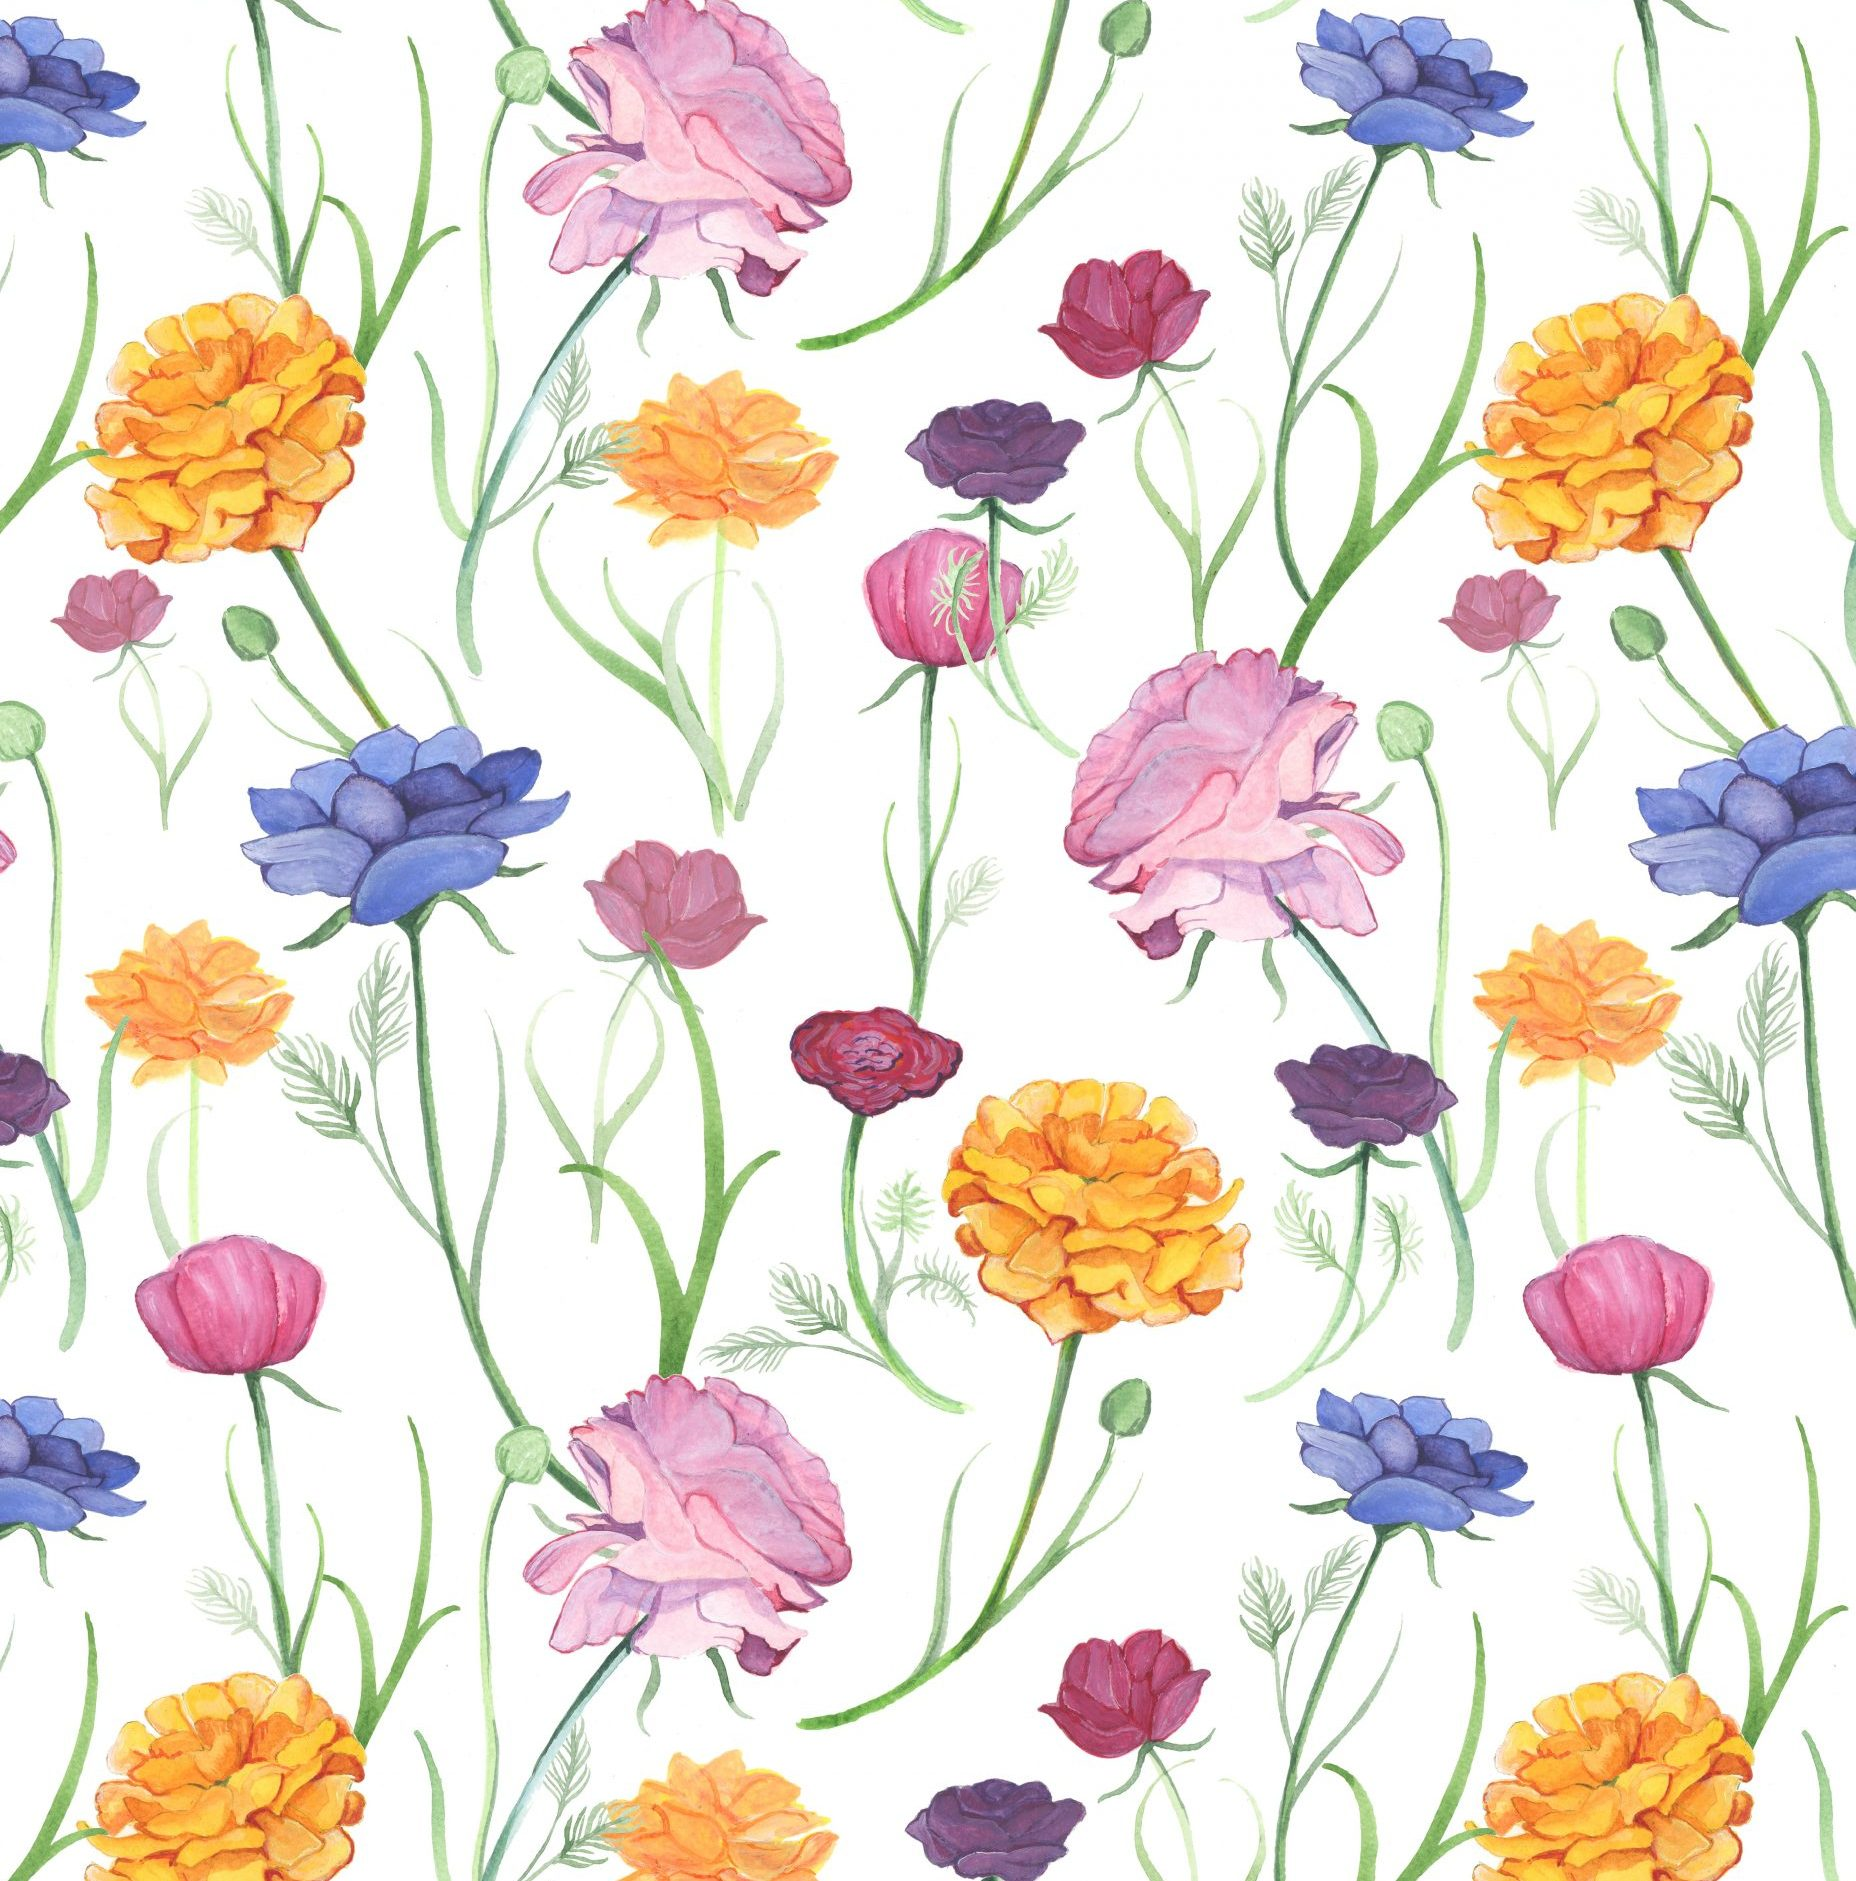 floral pattern repeat fabric